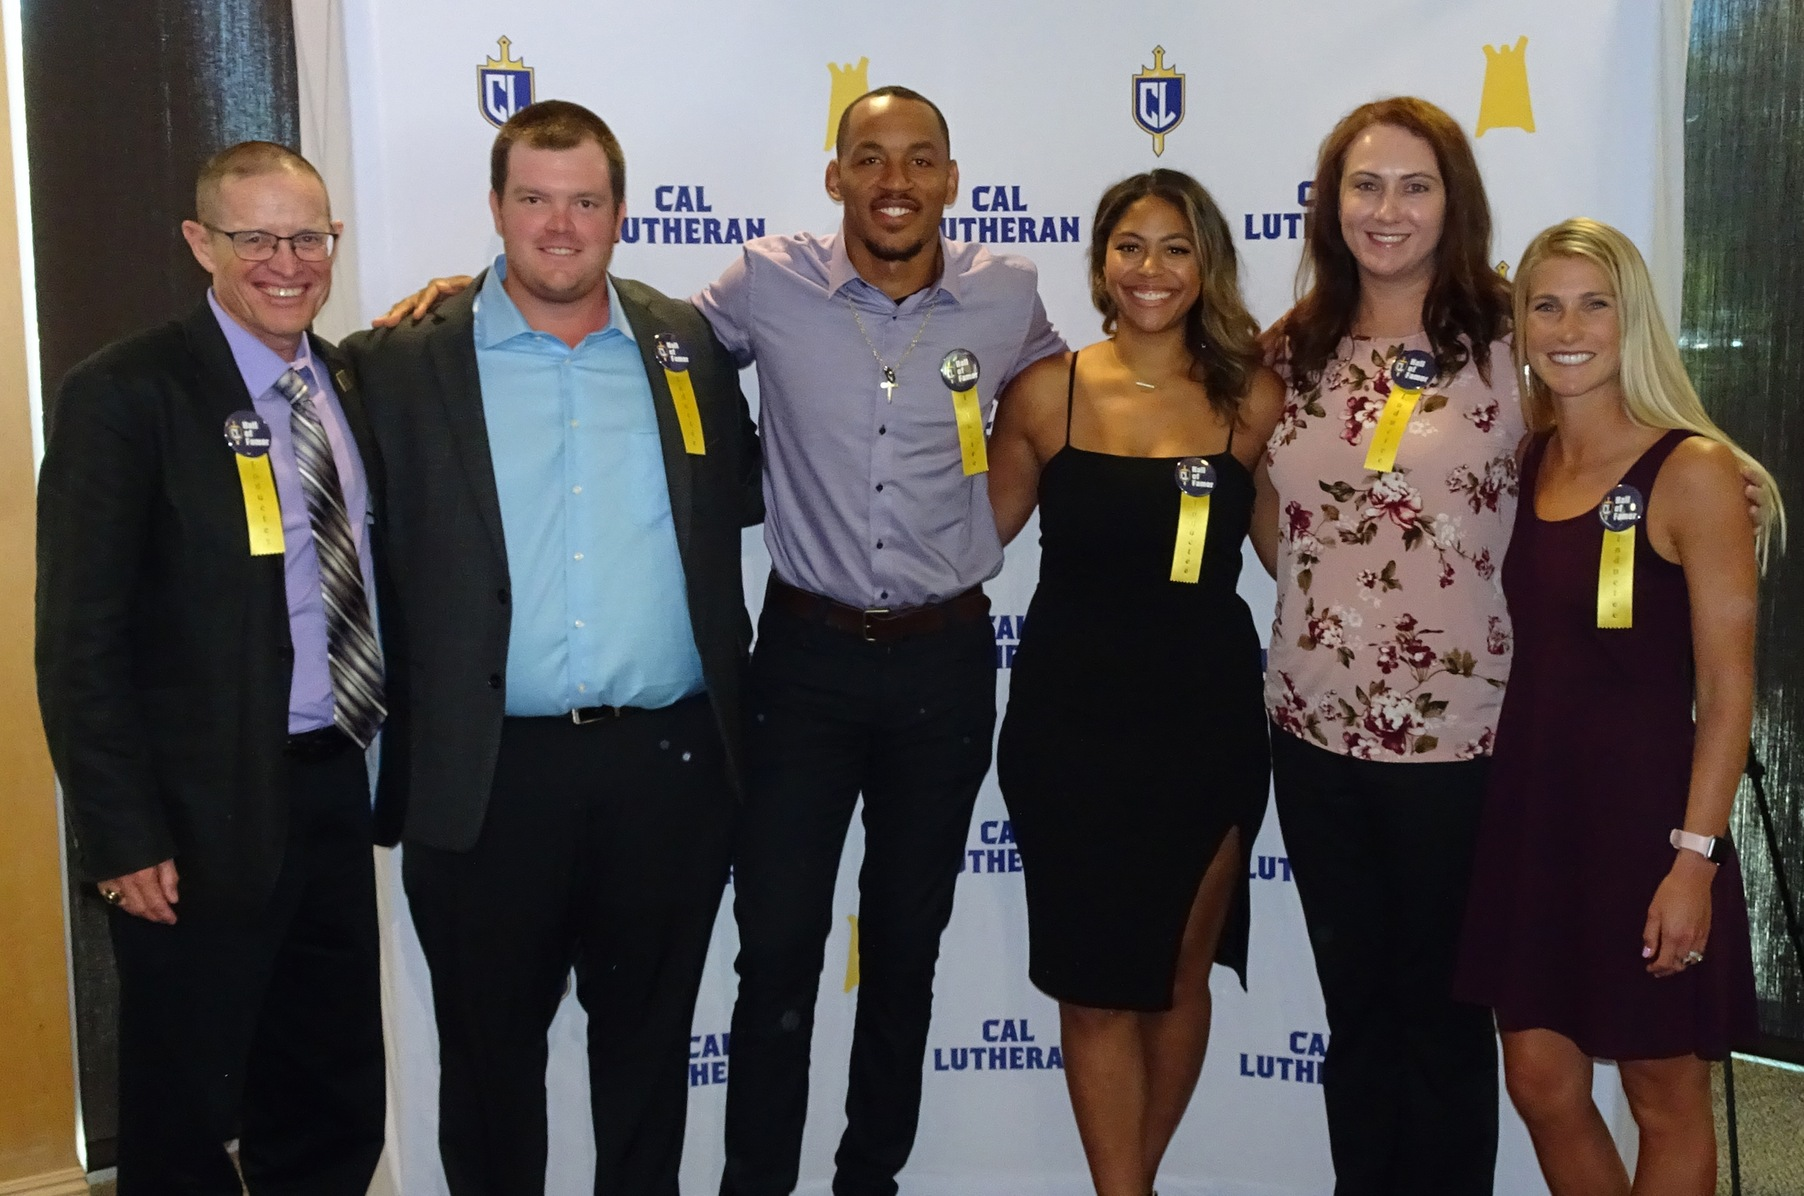 The 2019 Alumni Association Hall of Fame Class, from left to right, Steve Blum, Mikey McGinn, Eric Rogers, Kylie McLogan, Lauren (Stroot) Reynolds, and Jackie (Russell) Griffin.